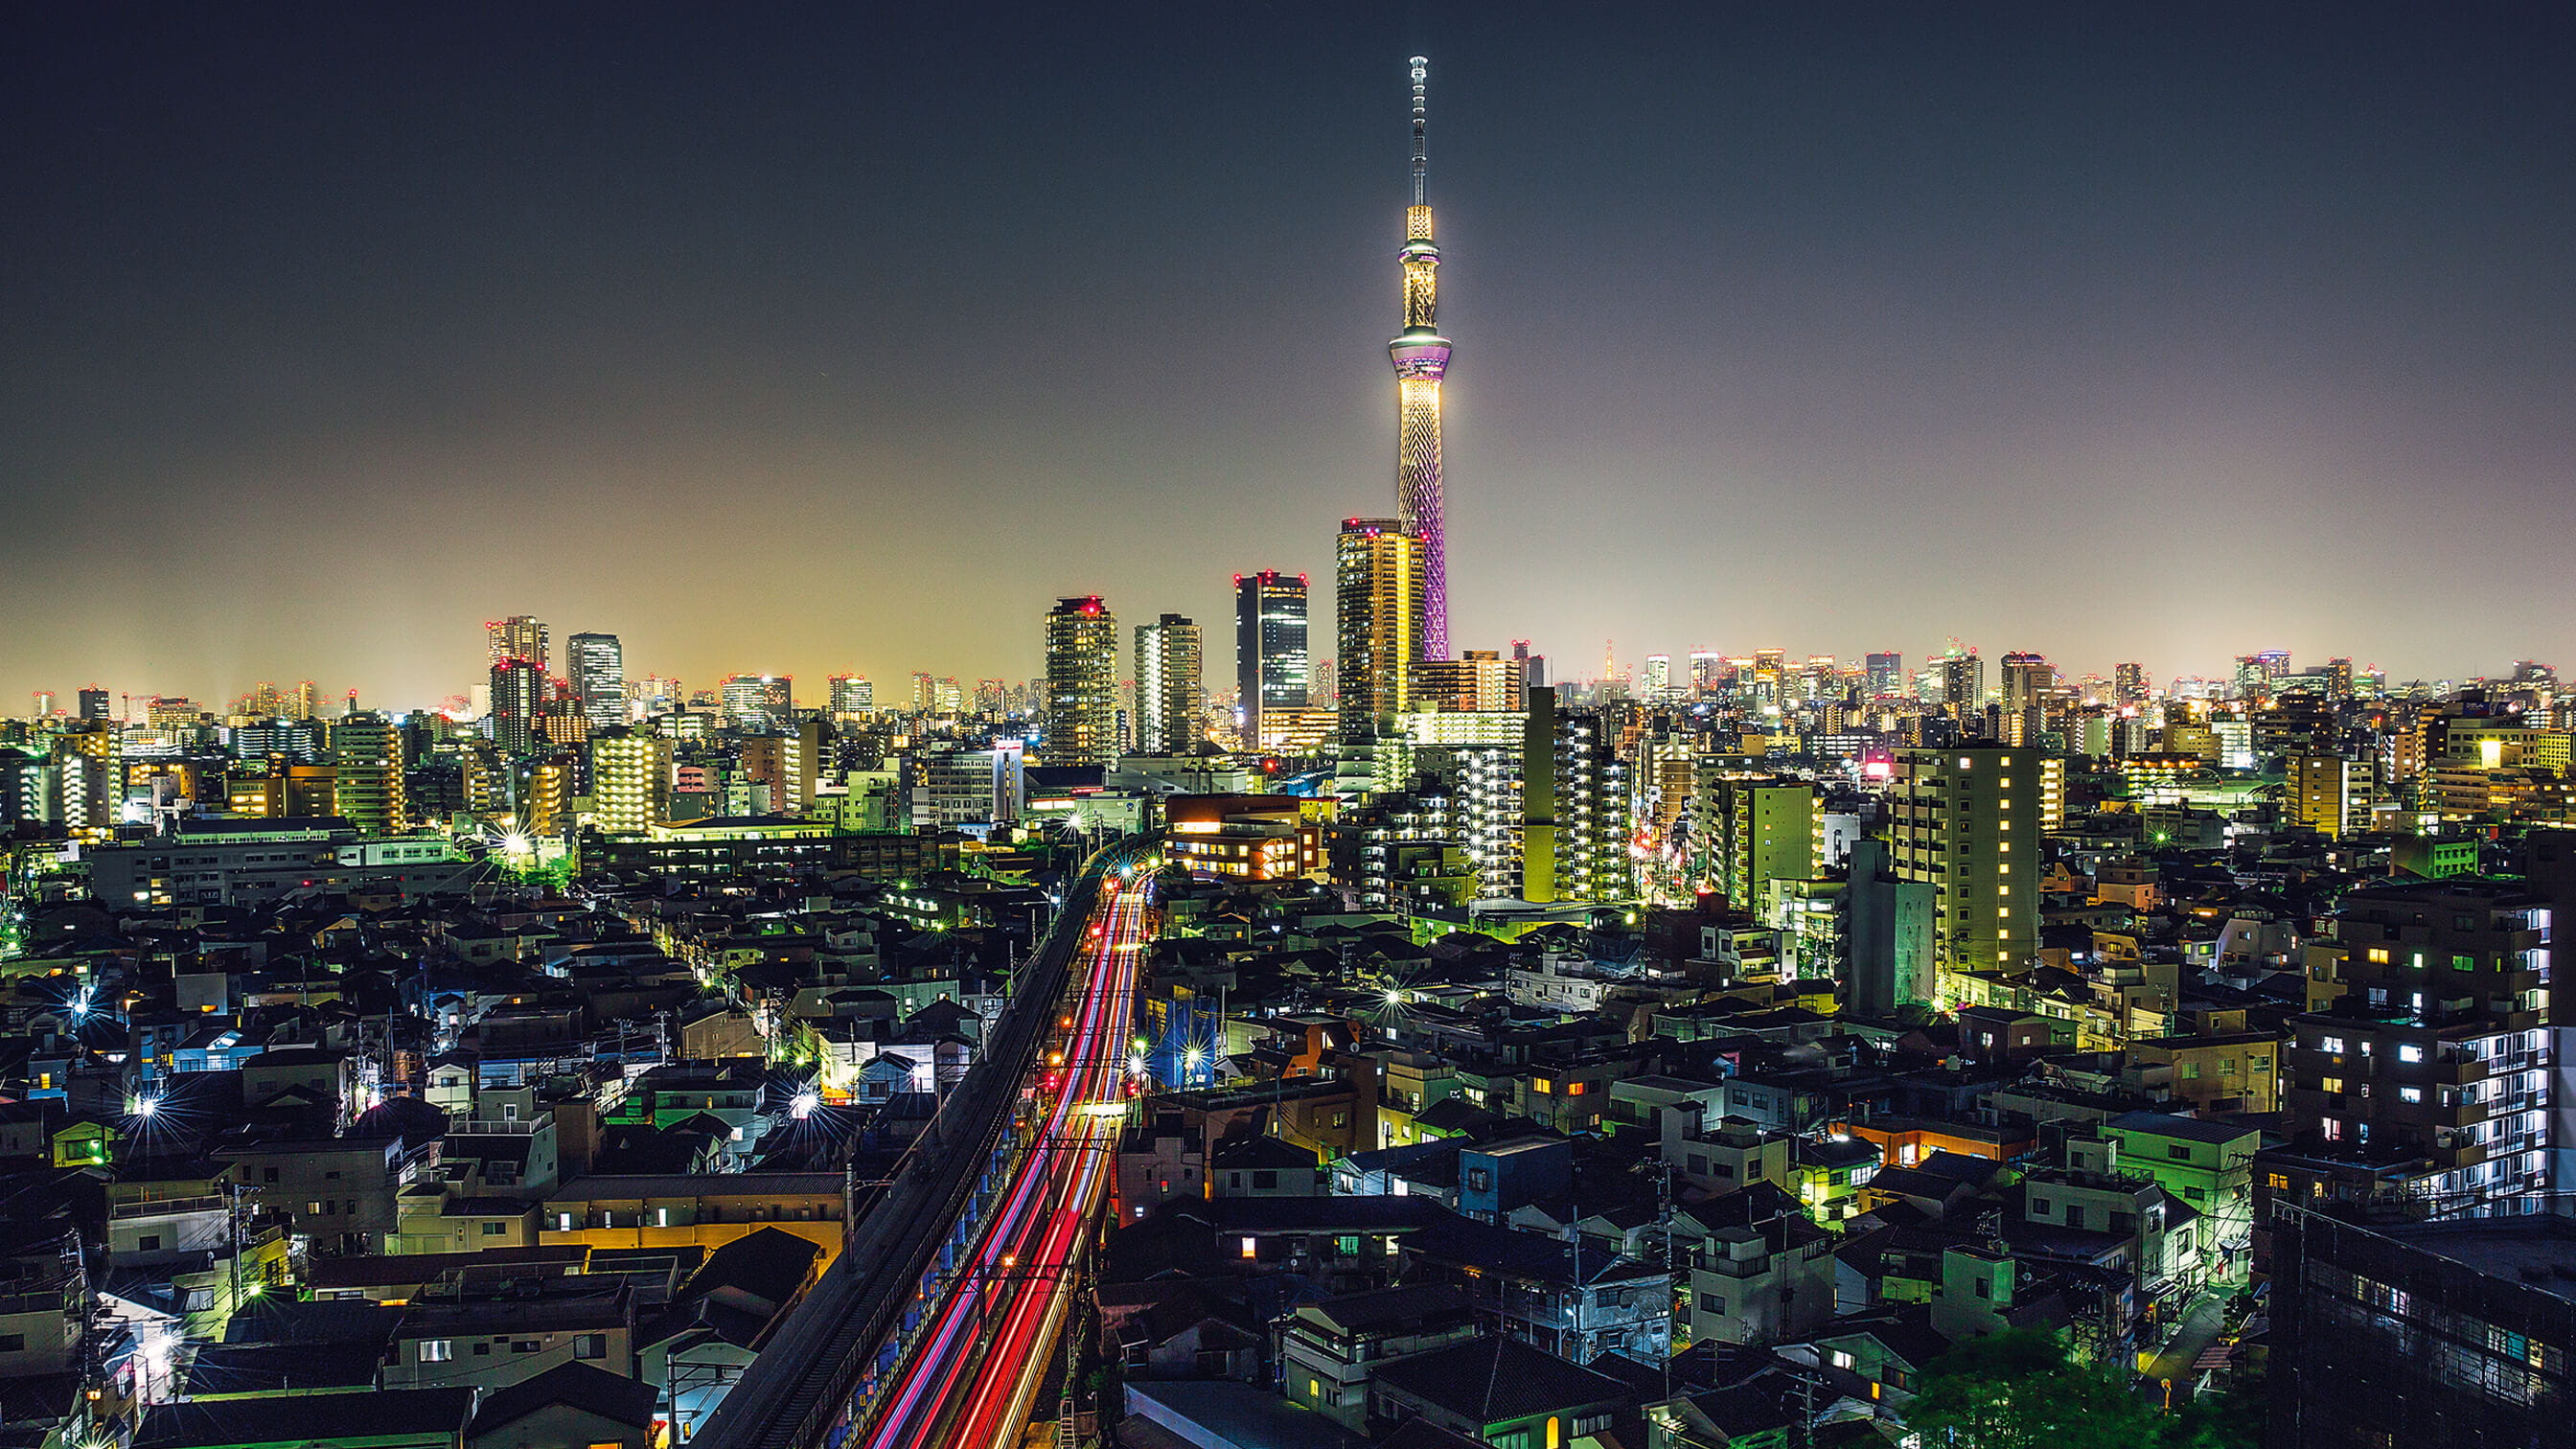 Japan cityscape at night